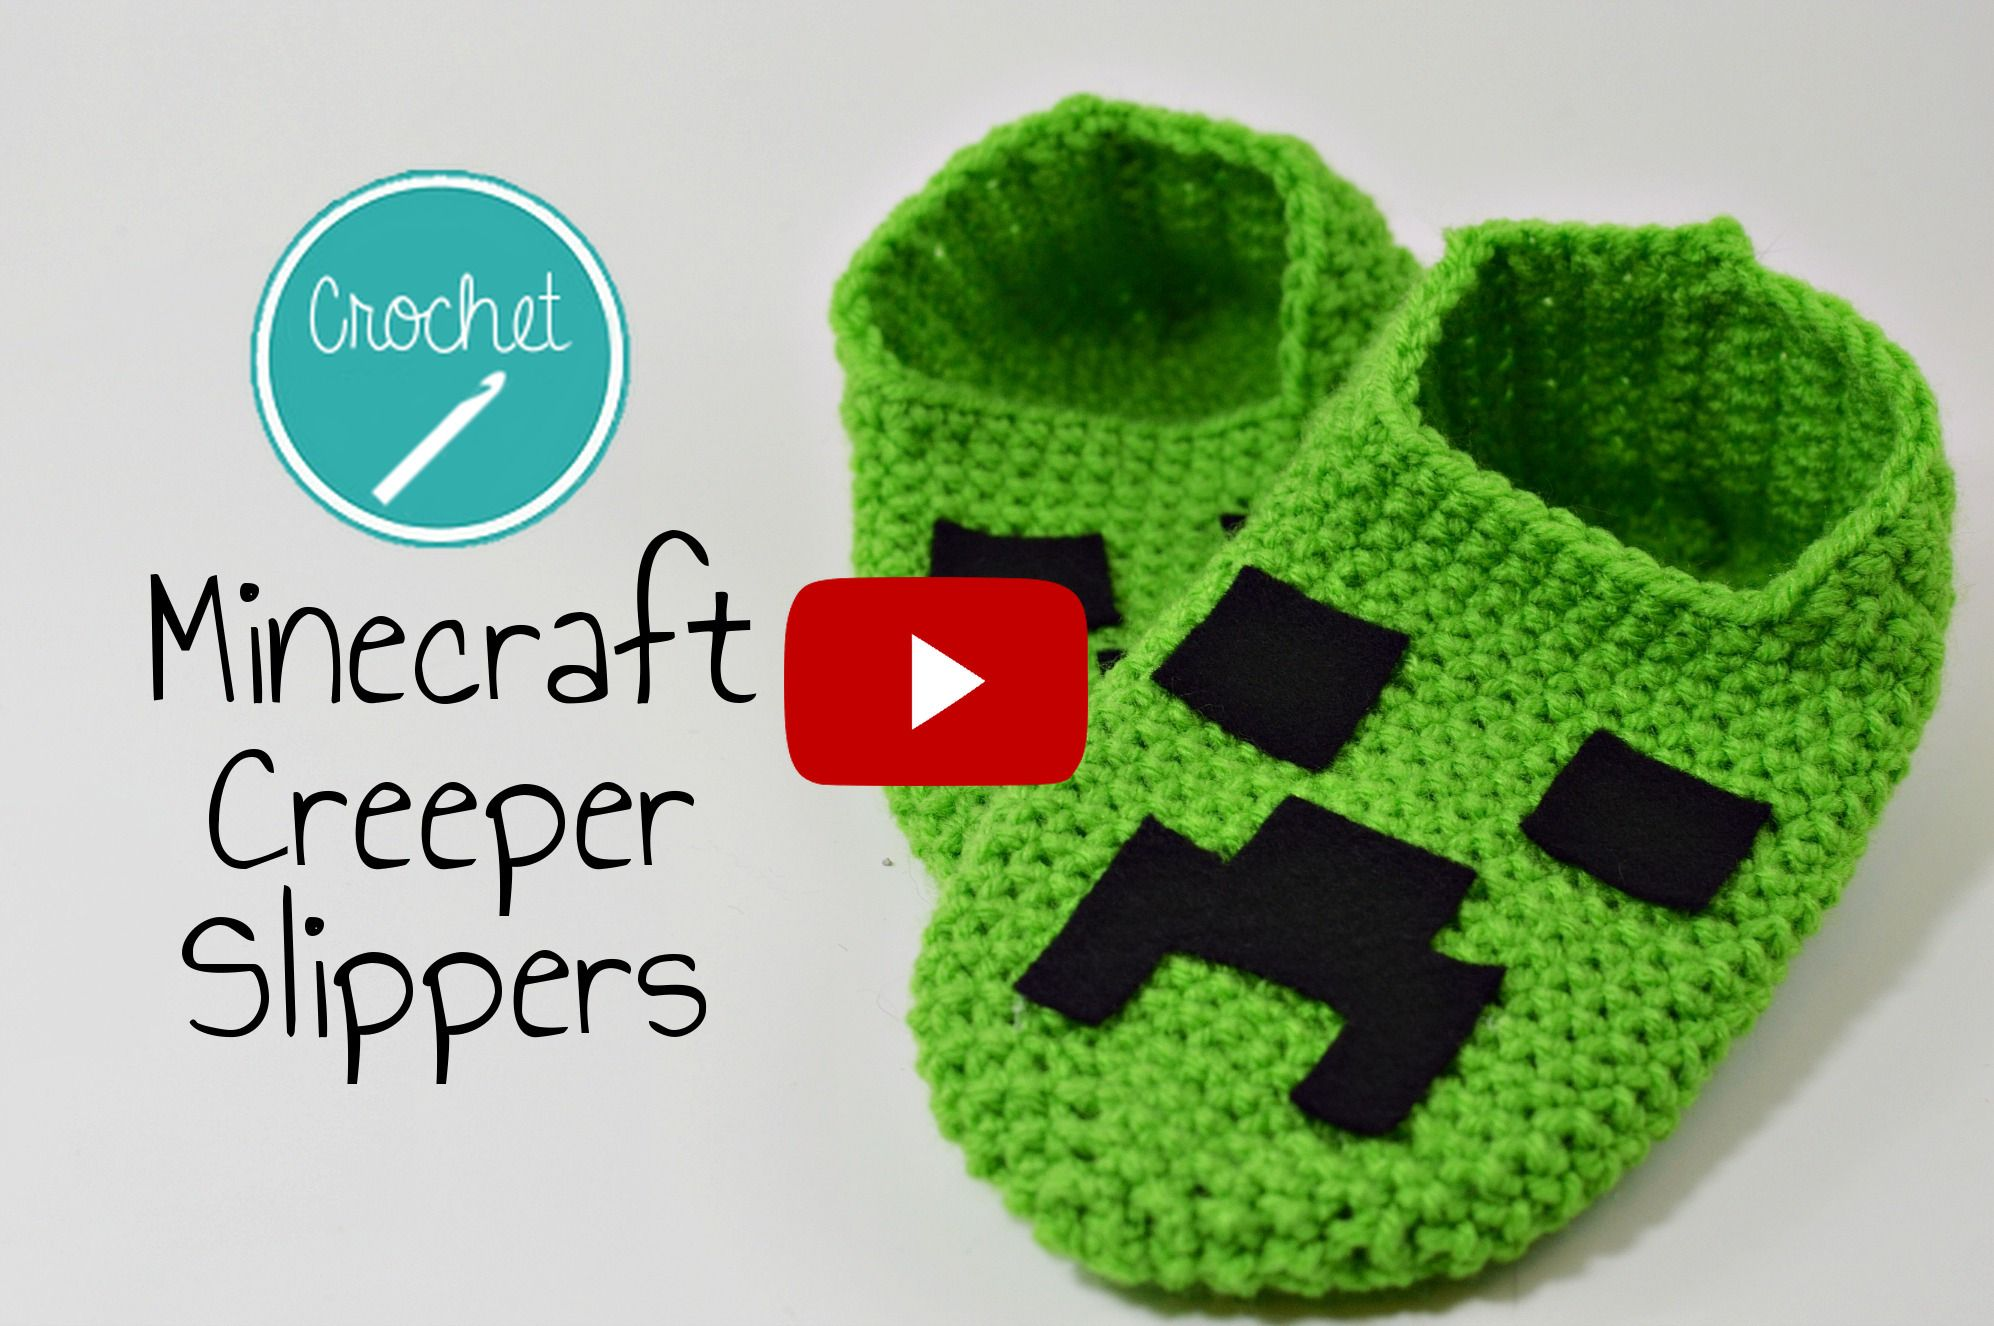 Crochet Minecraft Creeper Slippers YouTube Video Tutorial with ...